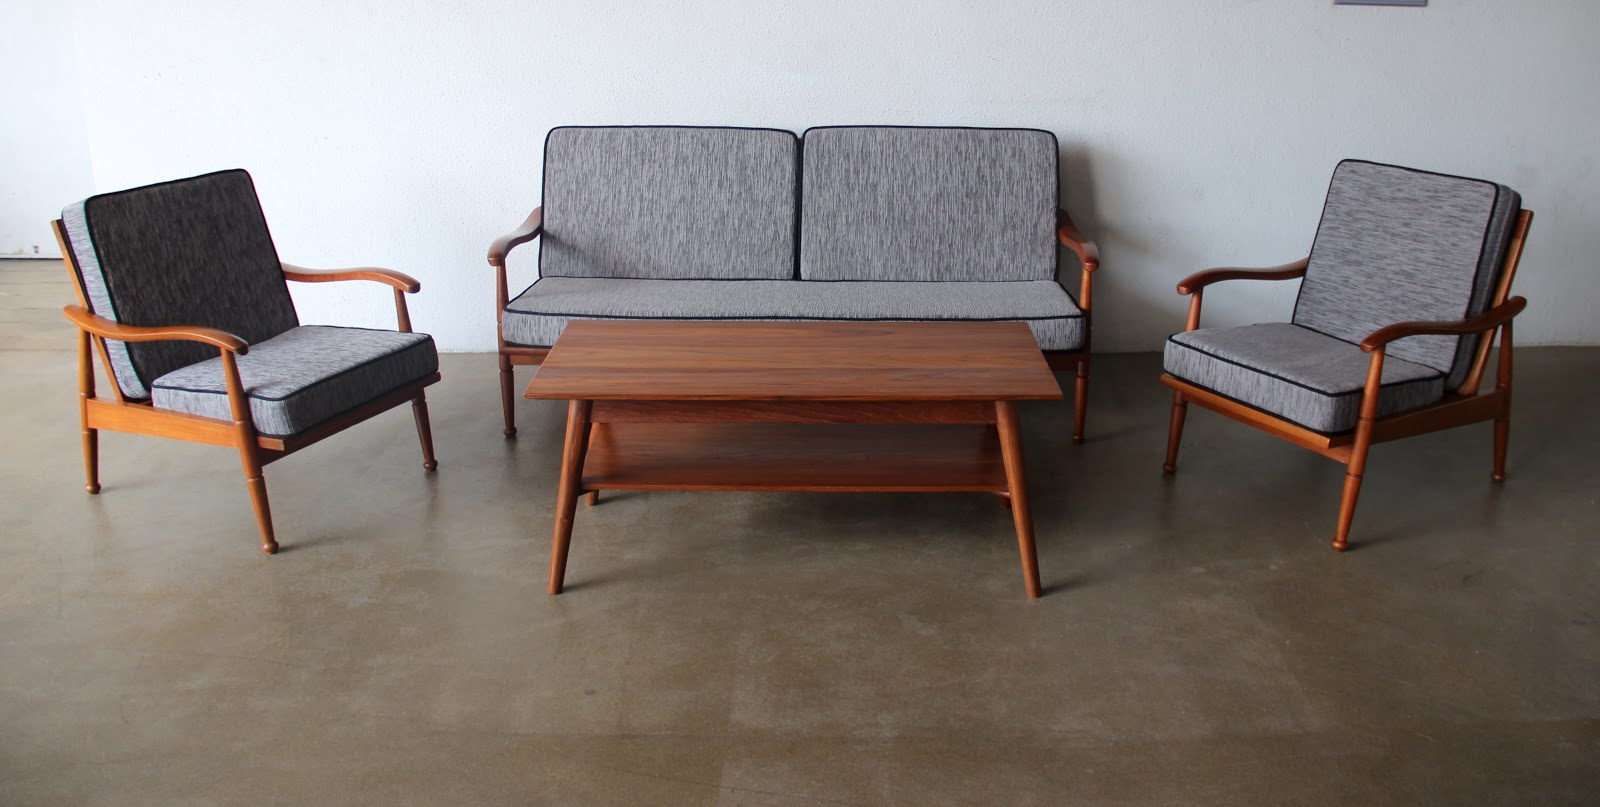 Places To Borrow Tables And Chairs Chair Backrest Support Mid Century Sofa Set Awesome Home